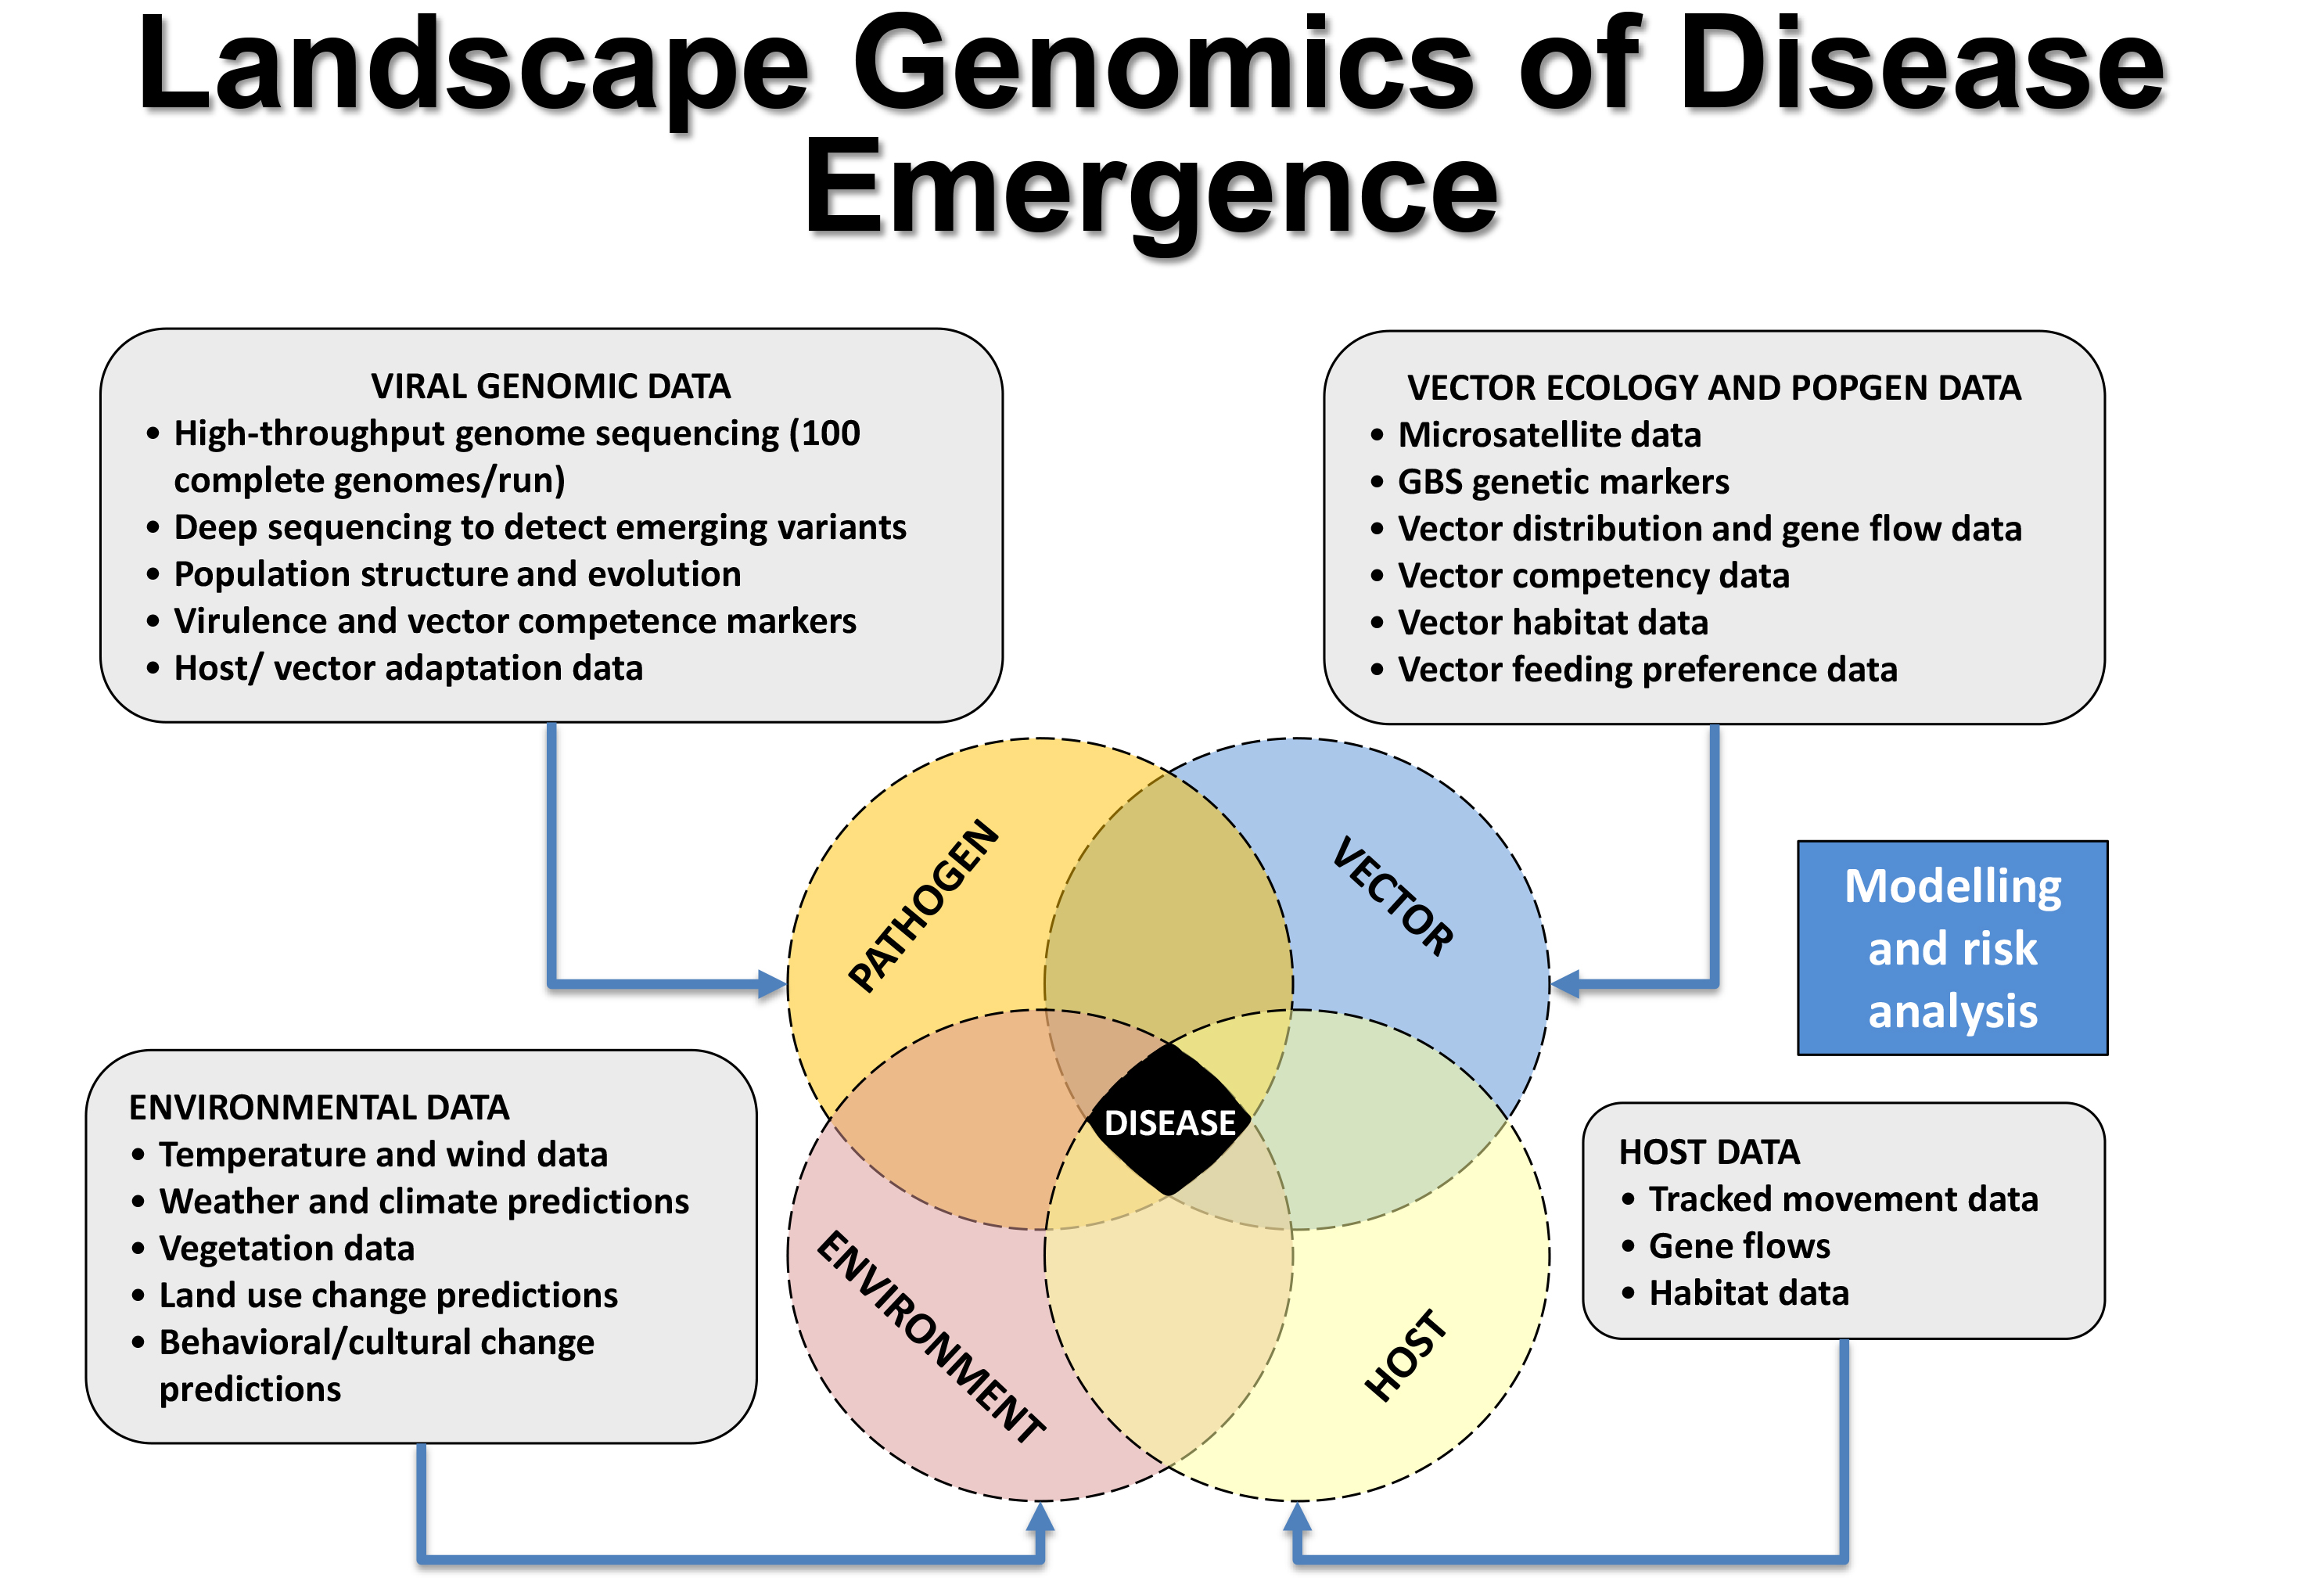 Landscape Genomics of Disease Emergence_Nikos_Lab